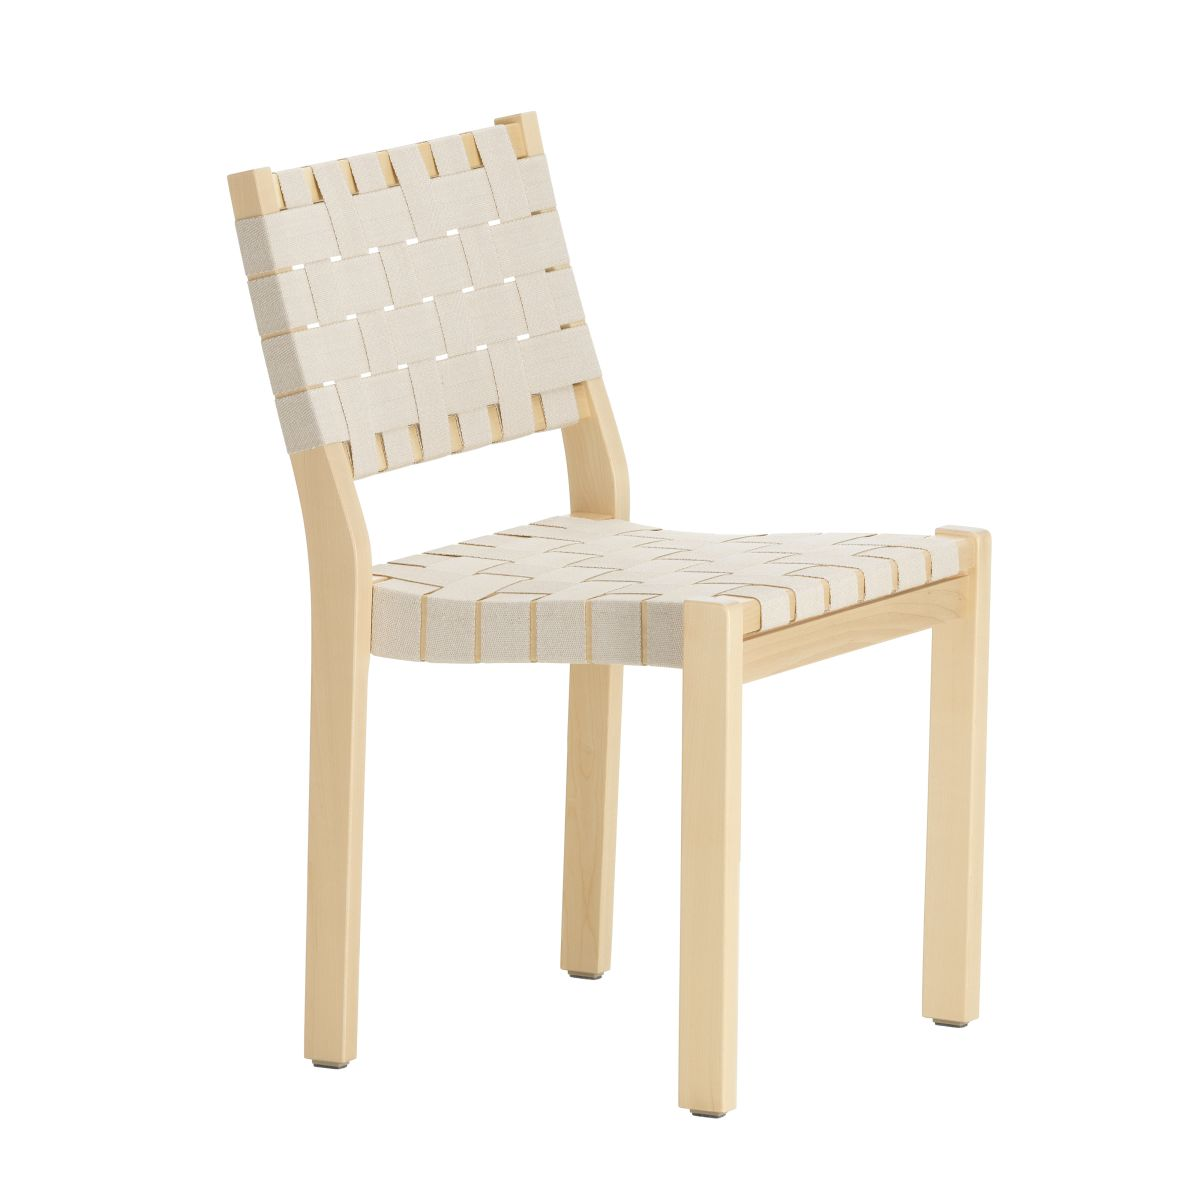 Chair 611 Clear Lacquered Birch Natural White New Webbing F 2436470